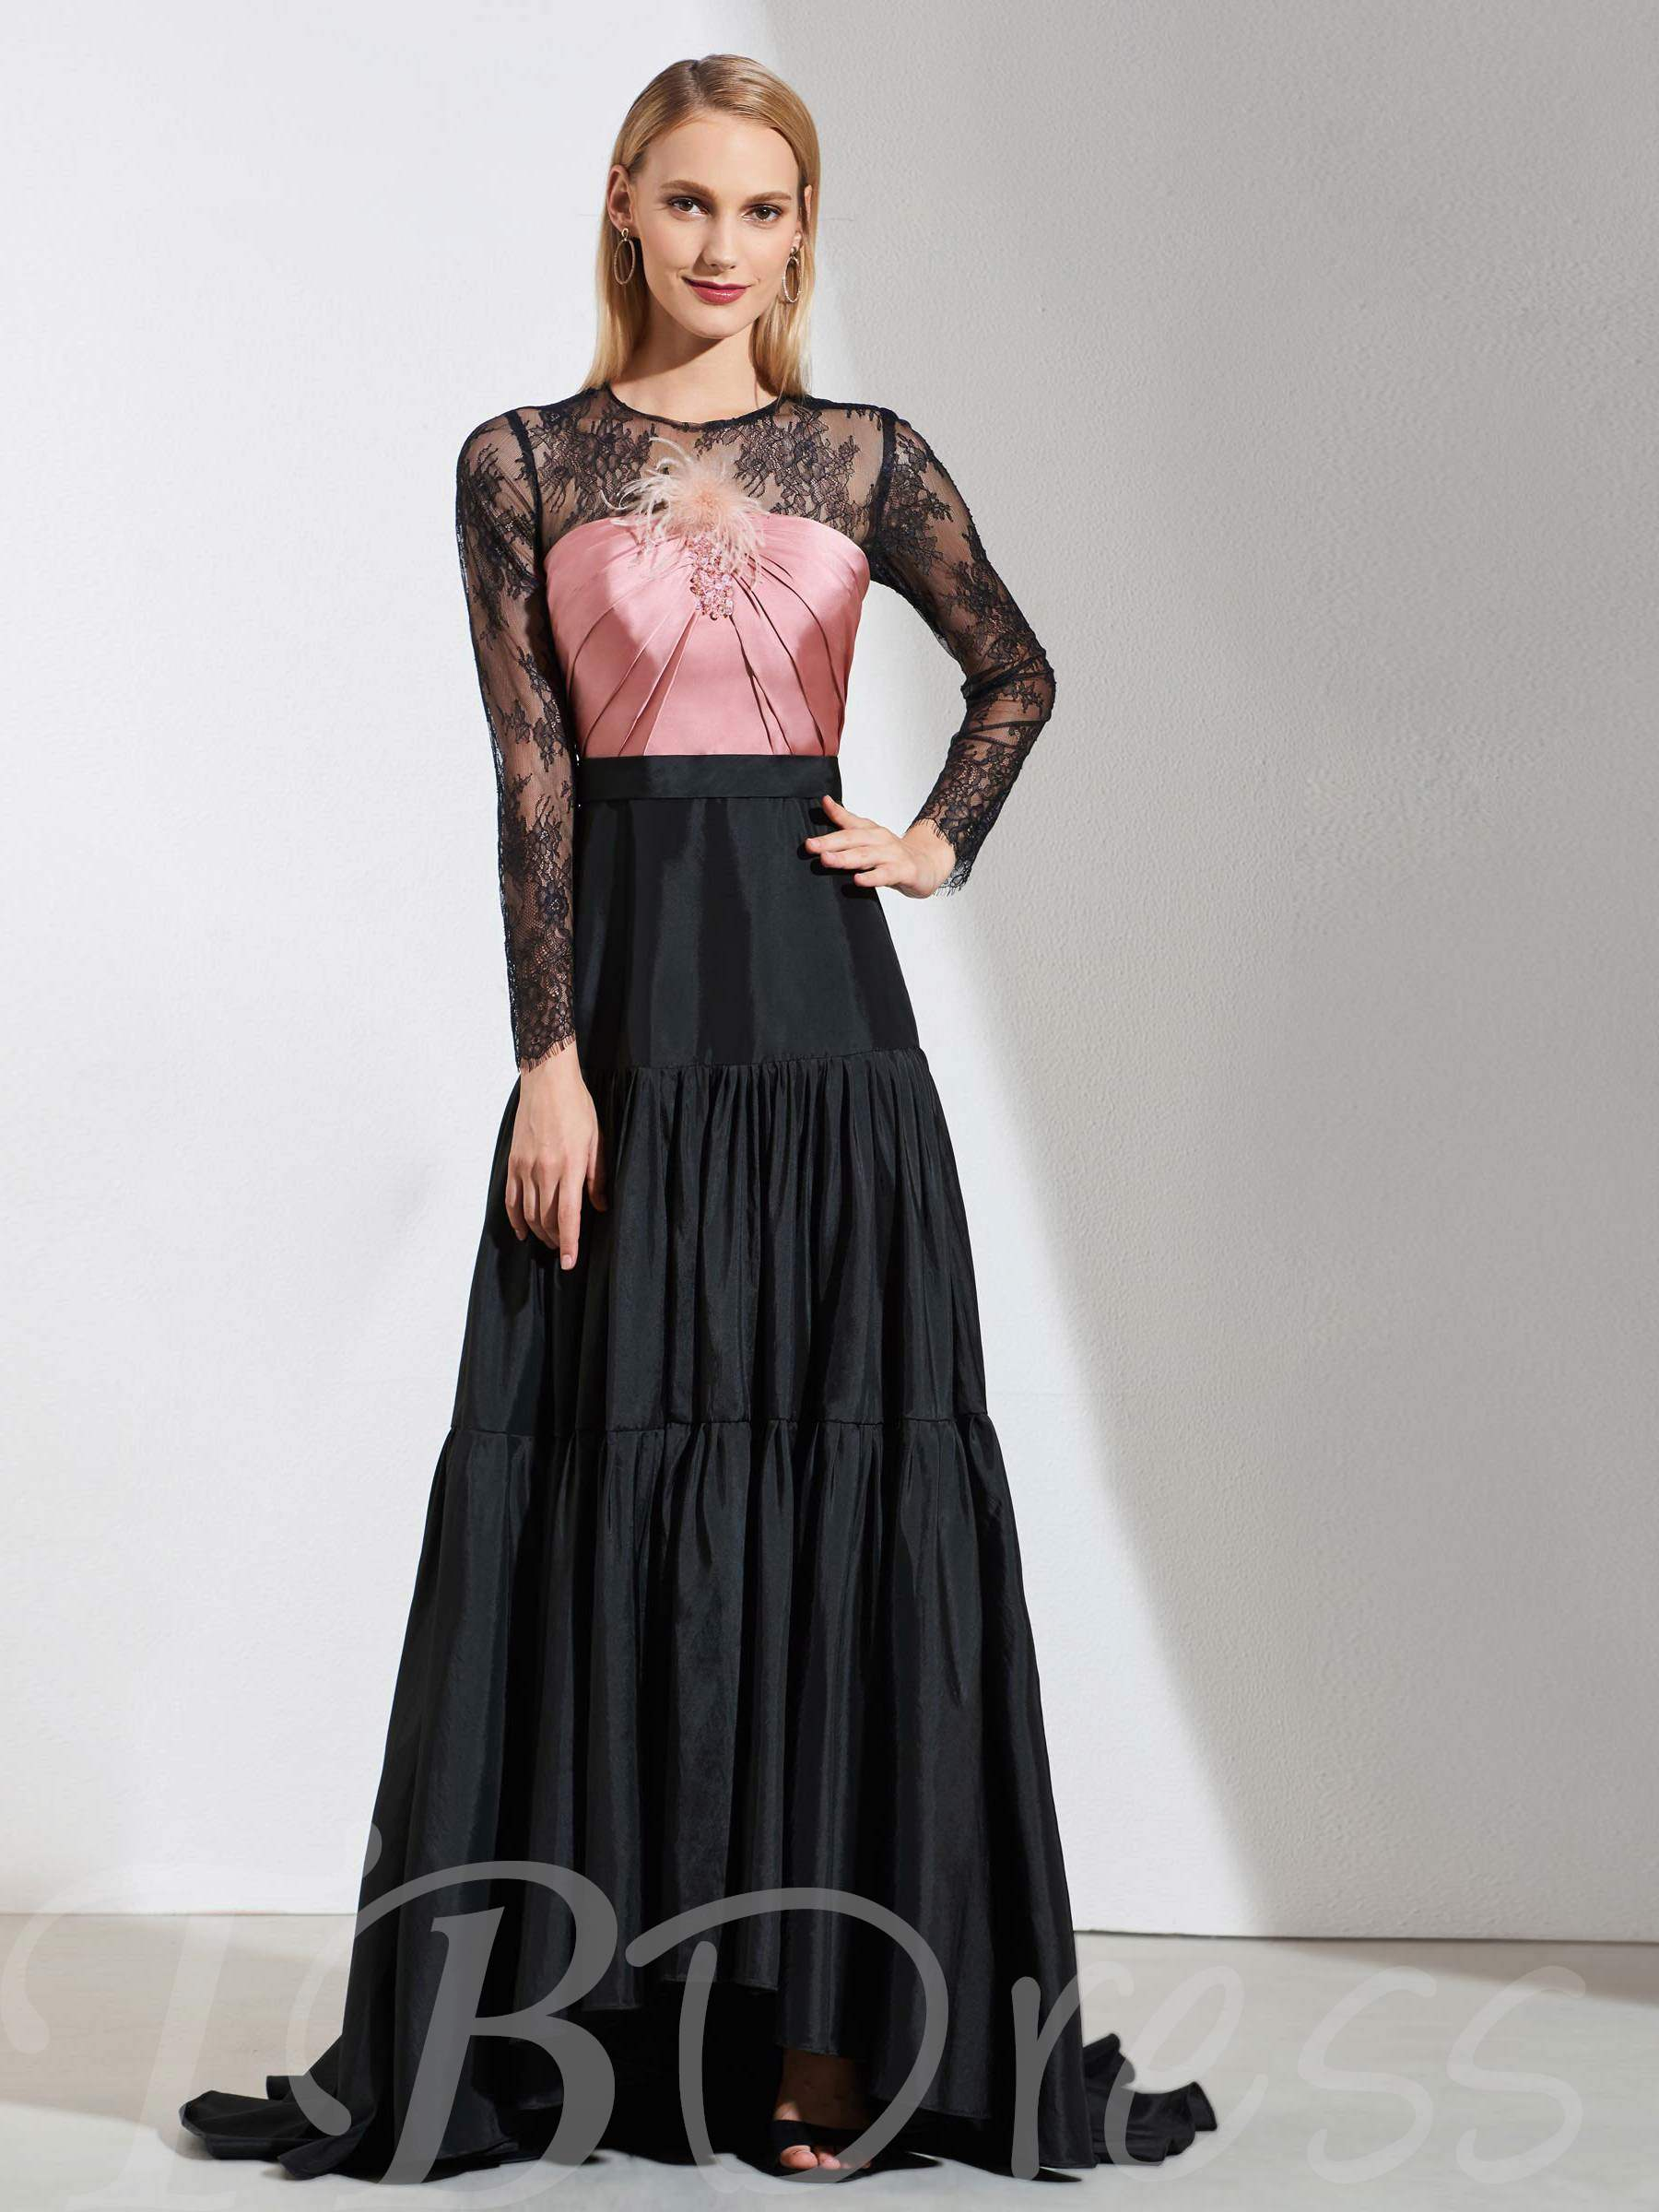 Buy A-Line Jewel Lace Long Sleeves Evening Dress, Spring,Summer,Fall,Winter, 13391625 for $156.99 in TBDress store